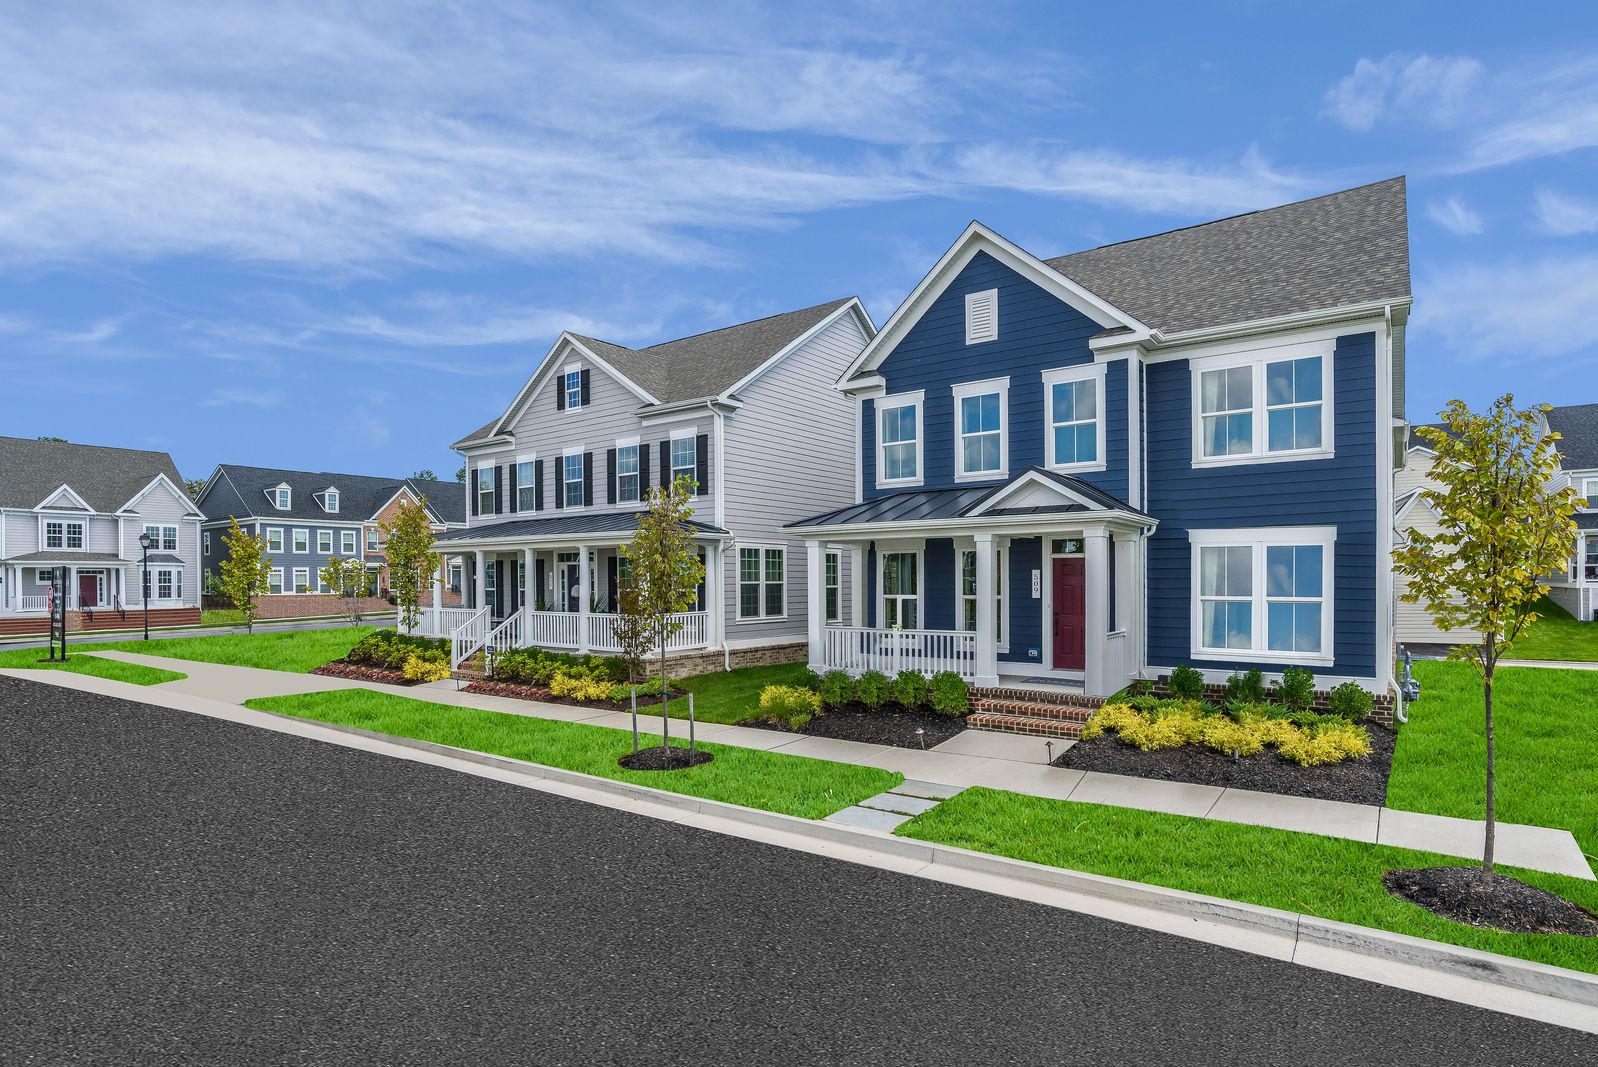 Welcome to Westlake Heights in Forest Hill, City of Richmond Address!:Schedule your private visit todayand see why Westlake Heights is one of Richmond's Top Communities!